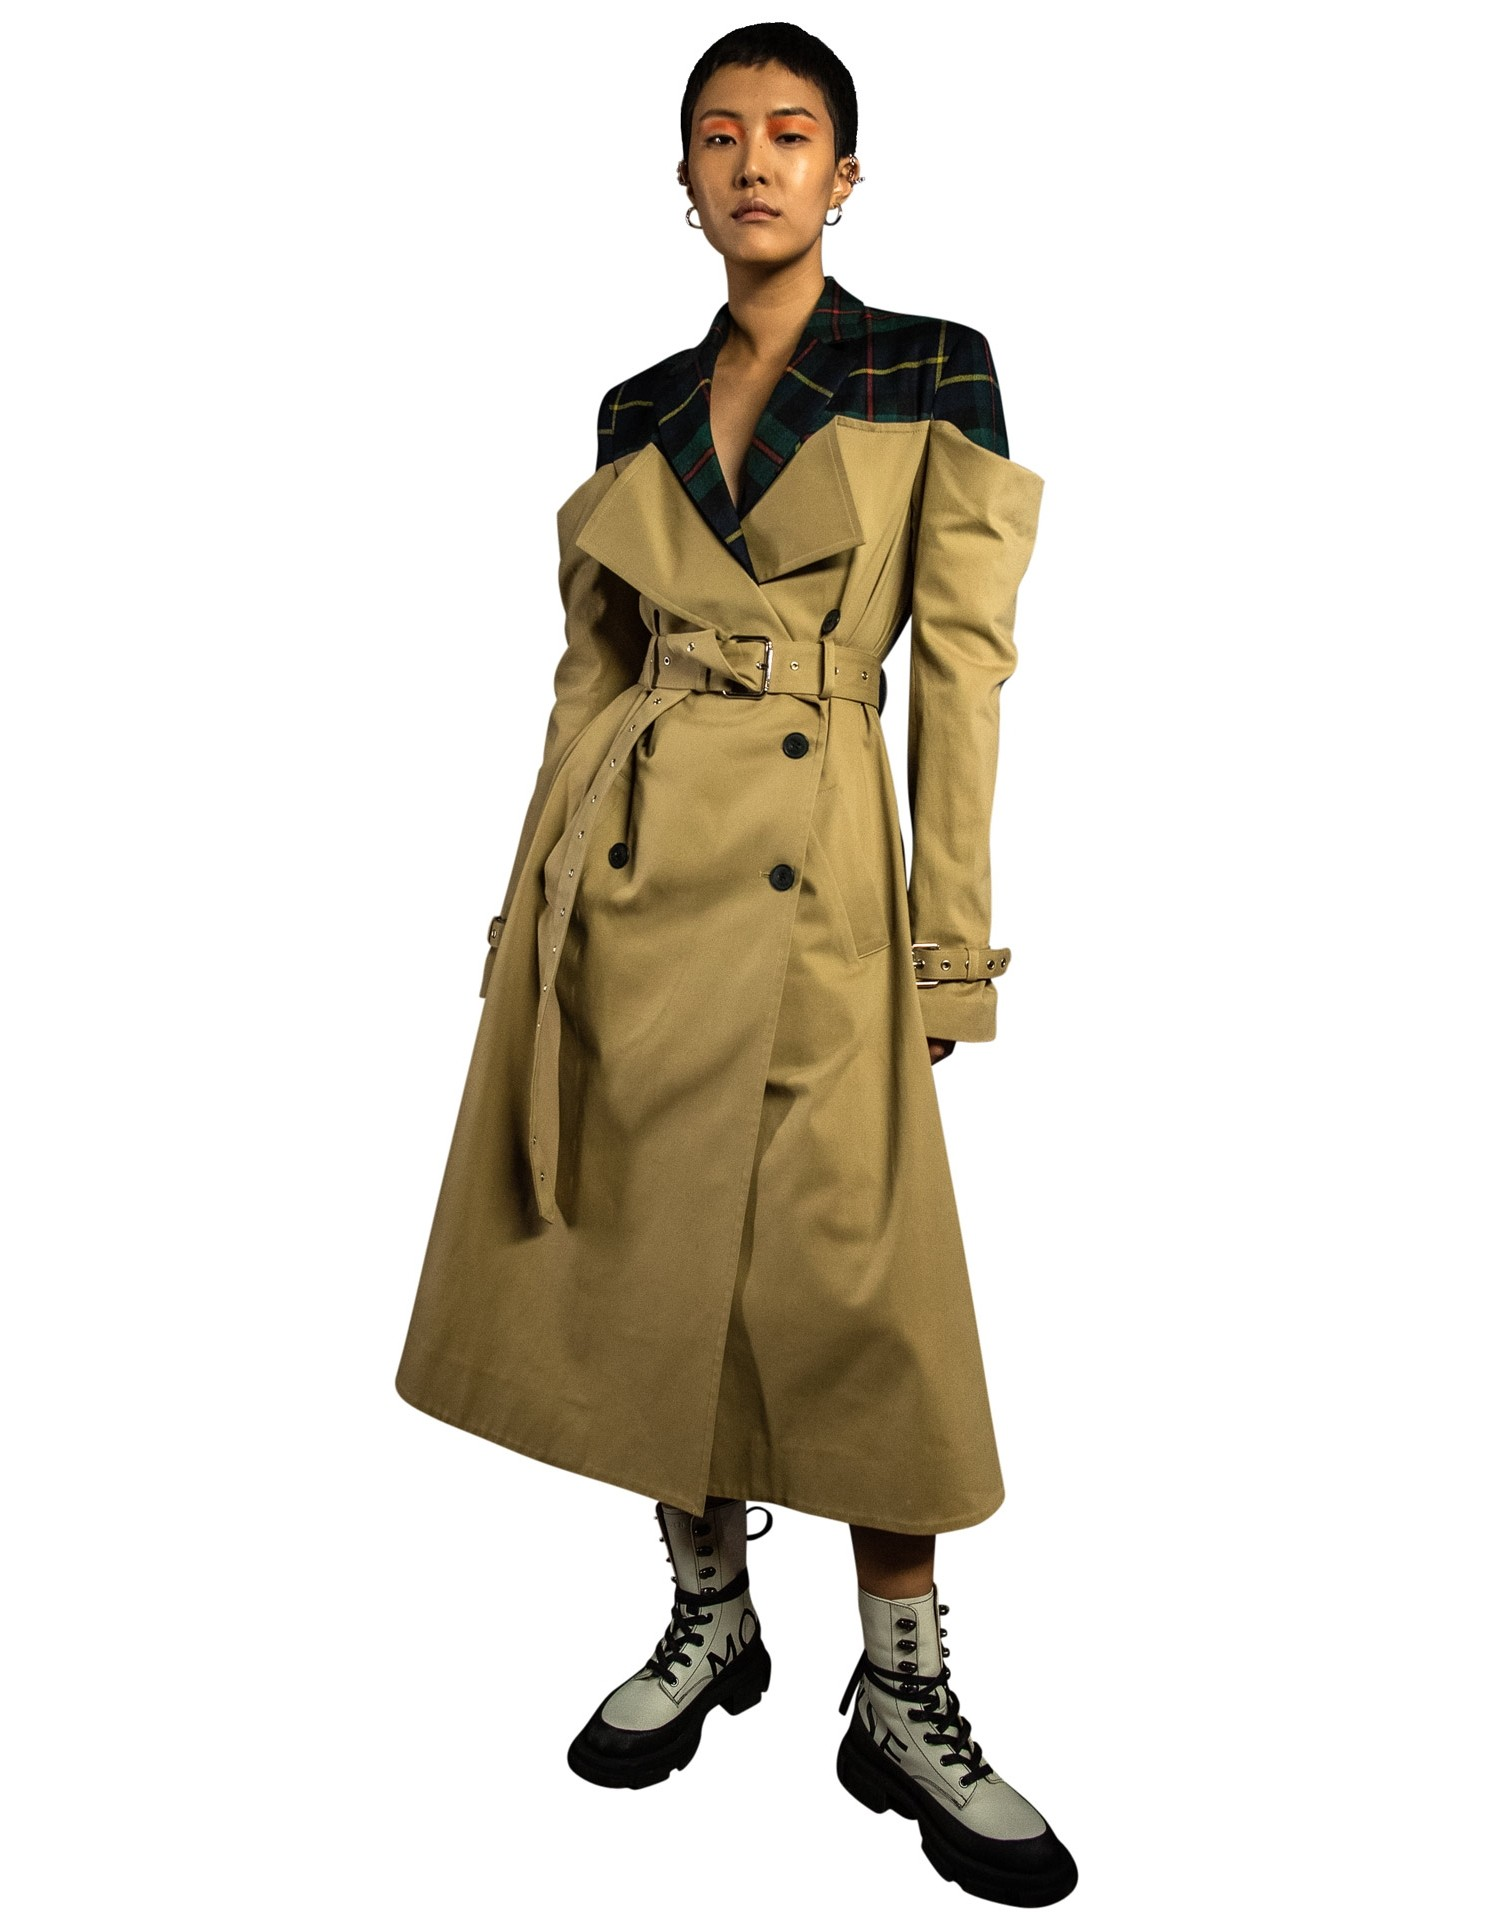 DECONSTRUCTED TRENCH COAT